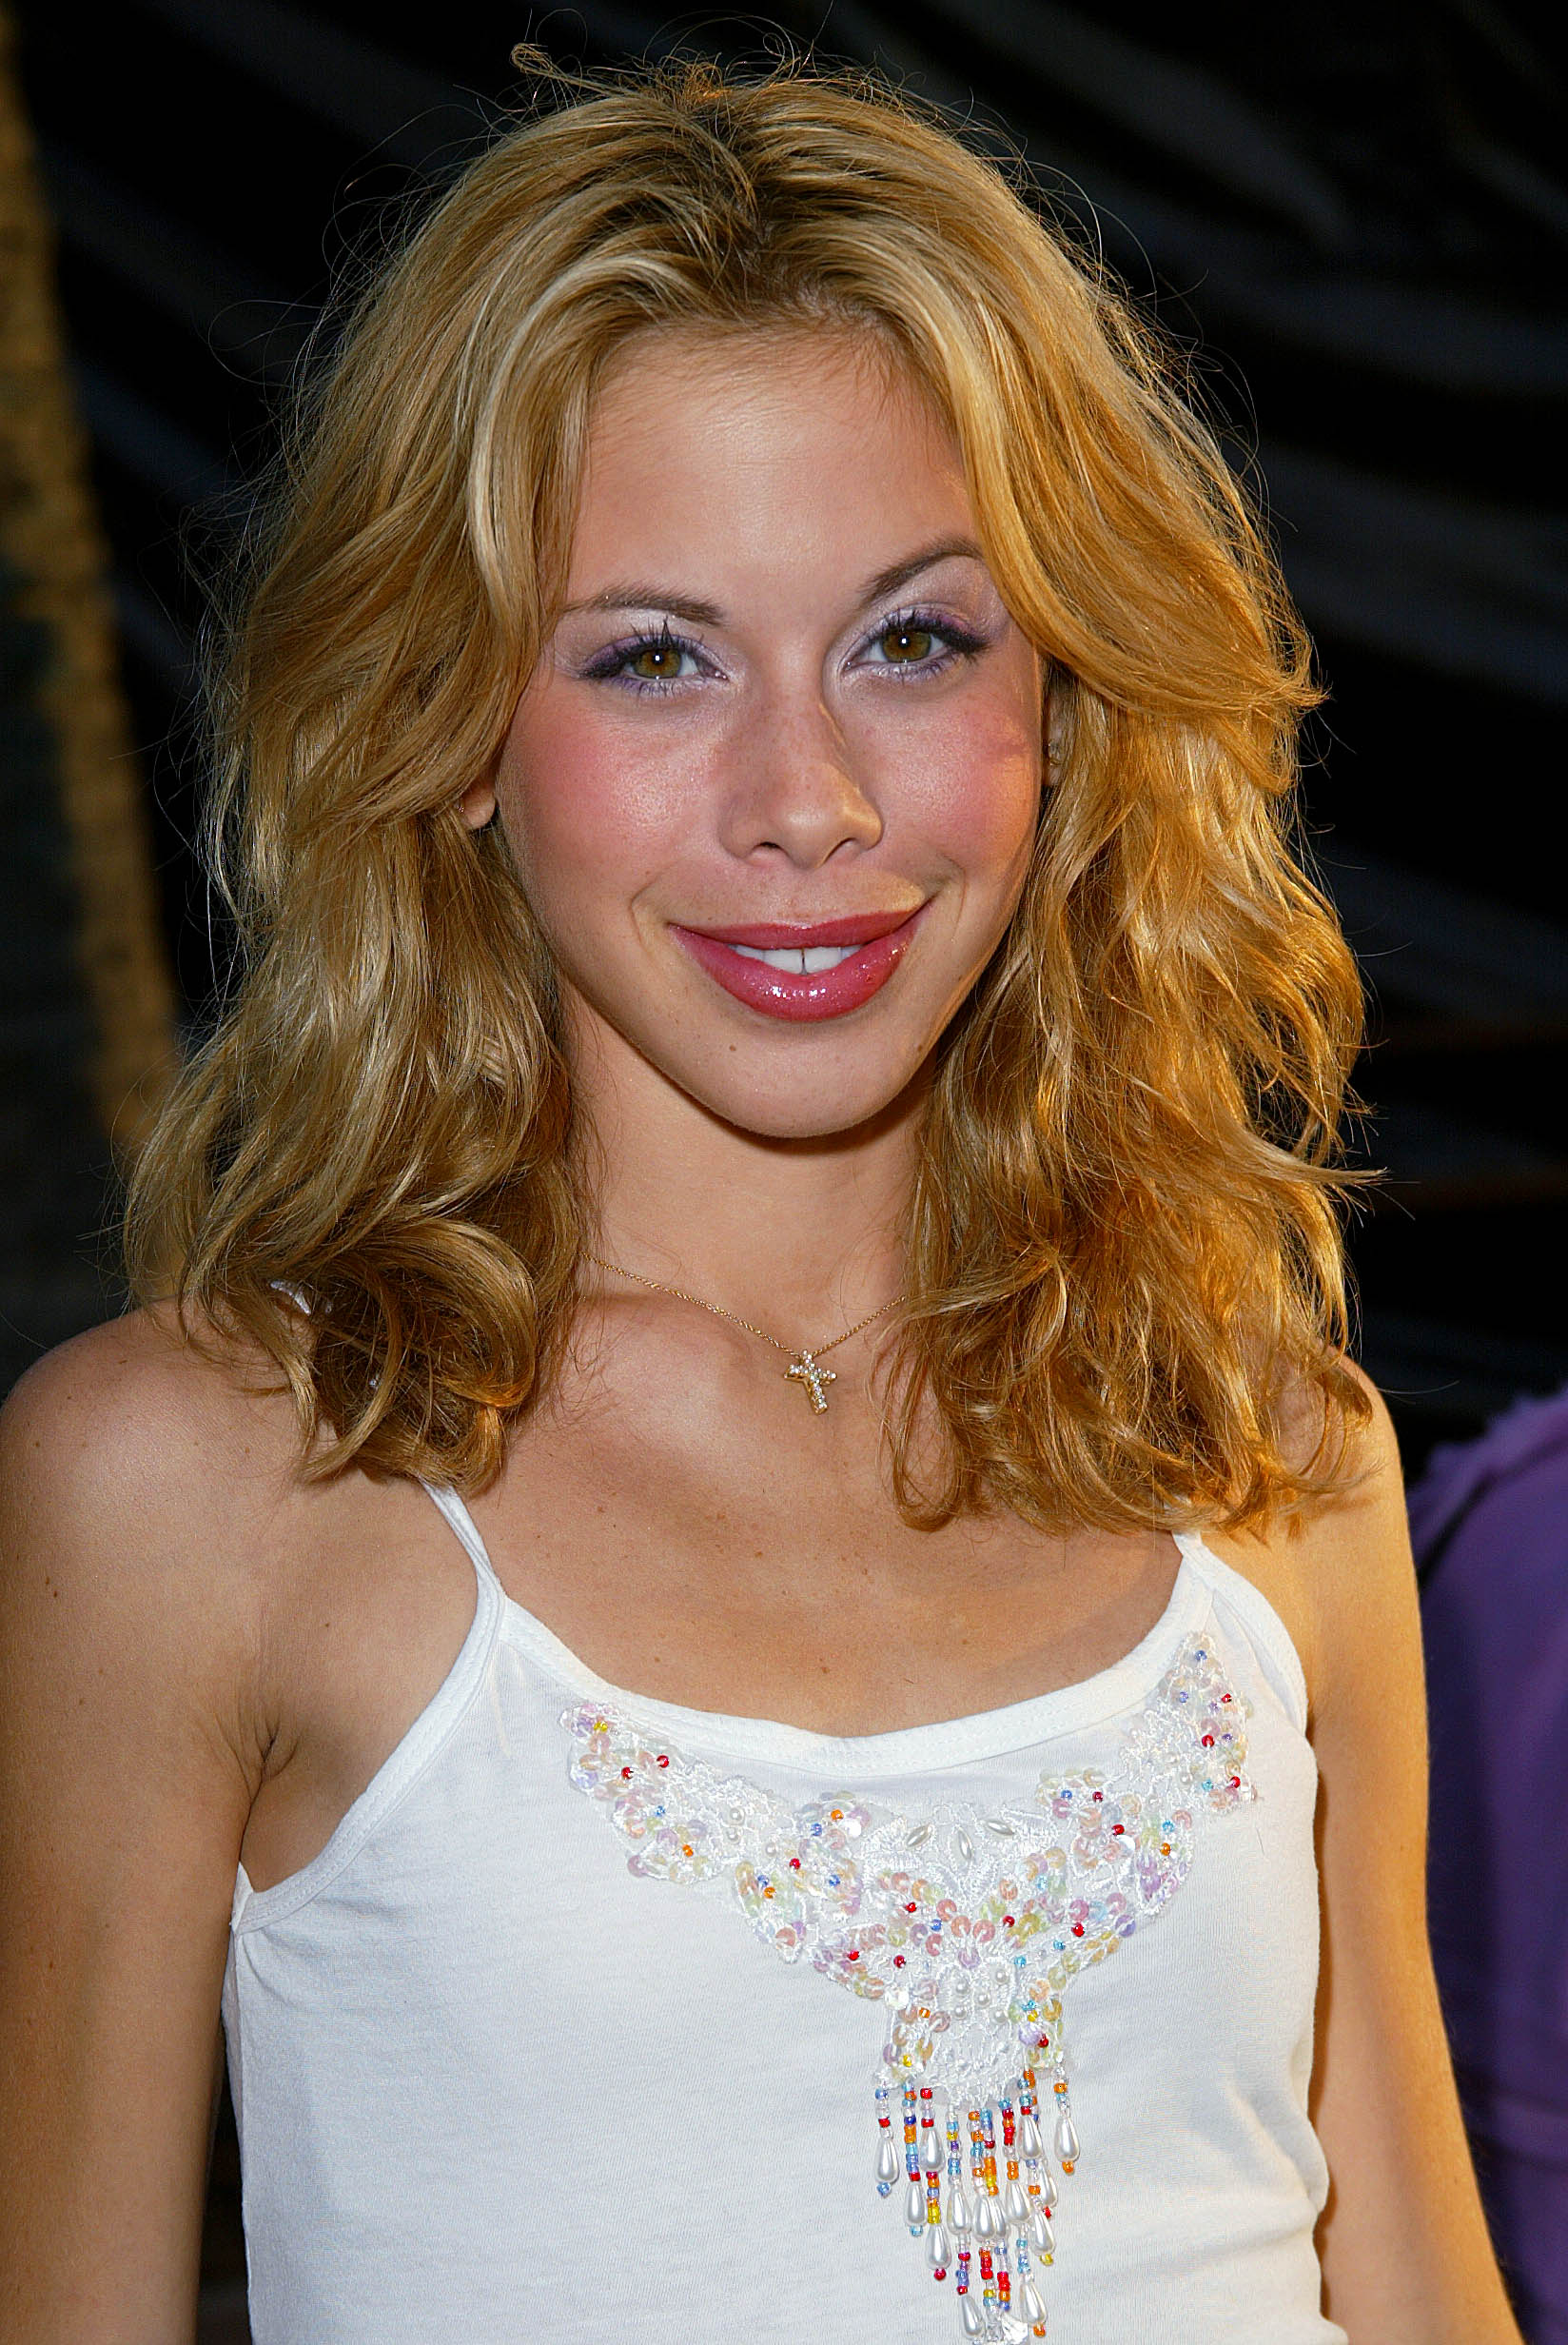 Image Result For Tara Lipinski